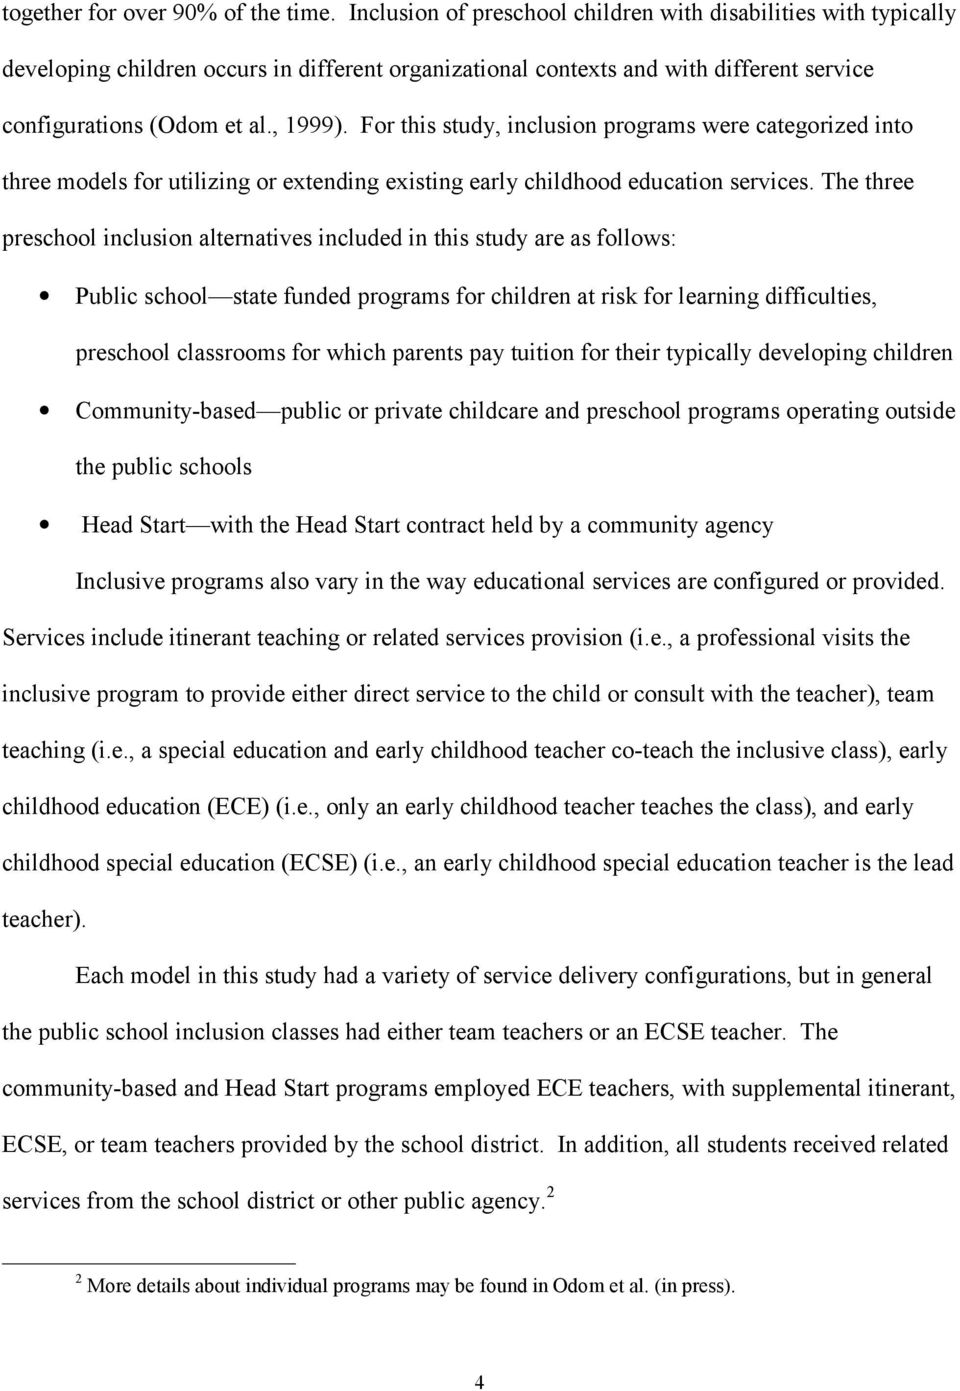 For this study, inclusion programs were categorized into three models for utilizing or extending existing early childhood education services.